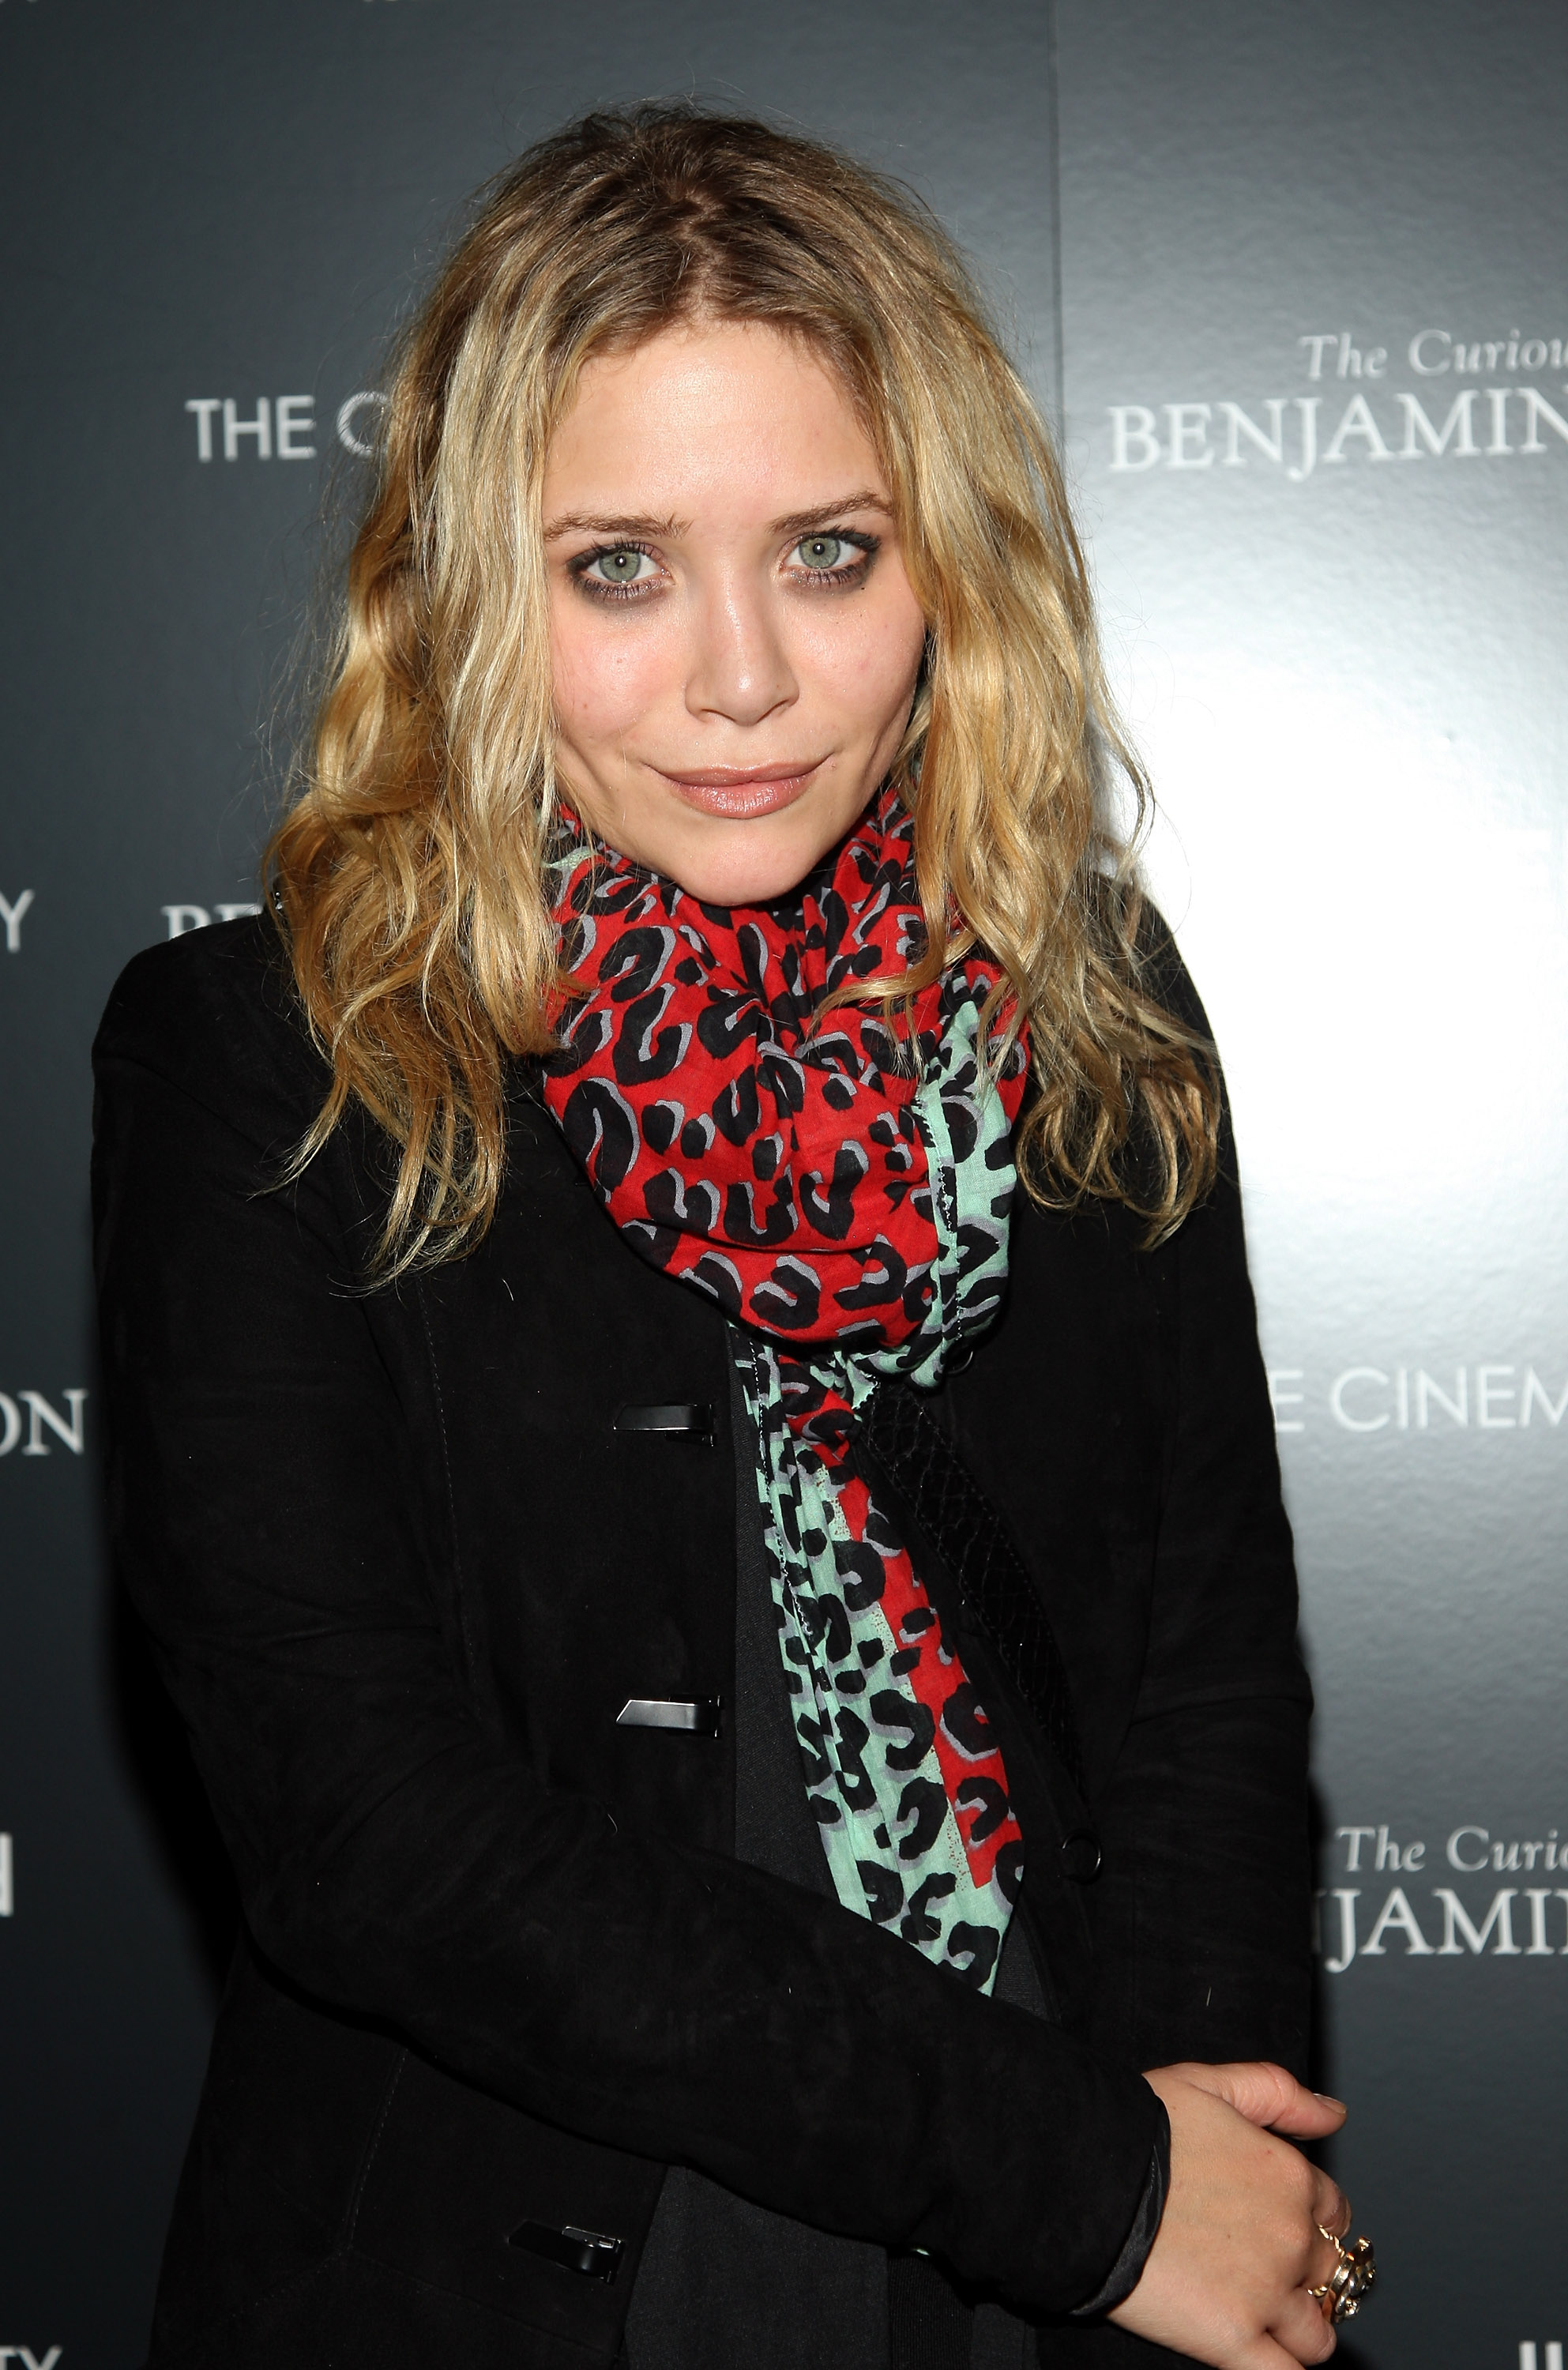 59284_Mary-Kate_Olsen_2008-12-11_-__Screening_of_The_Curious_Case_of_Benjamin_Button_823_122_1042lo.jpg